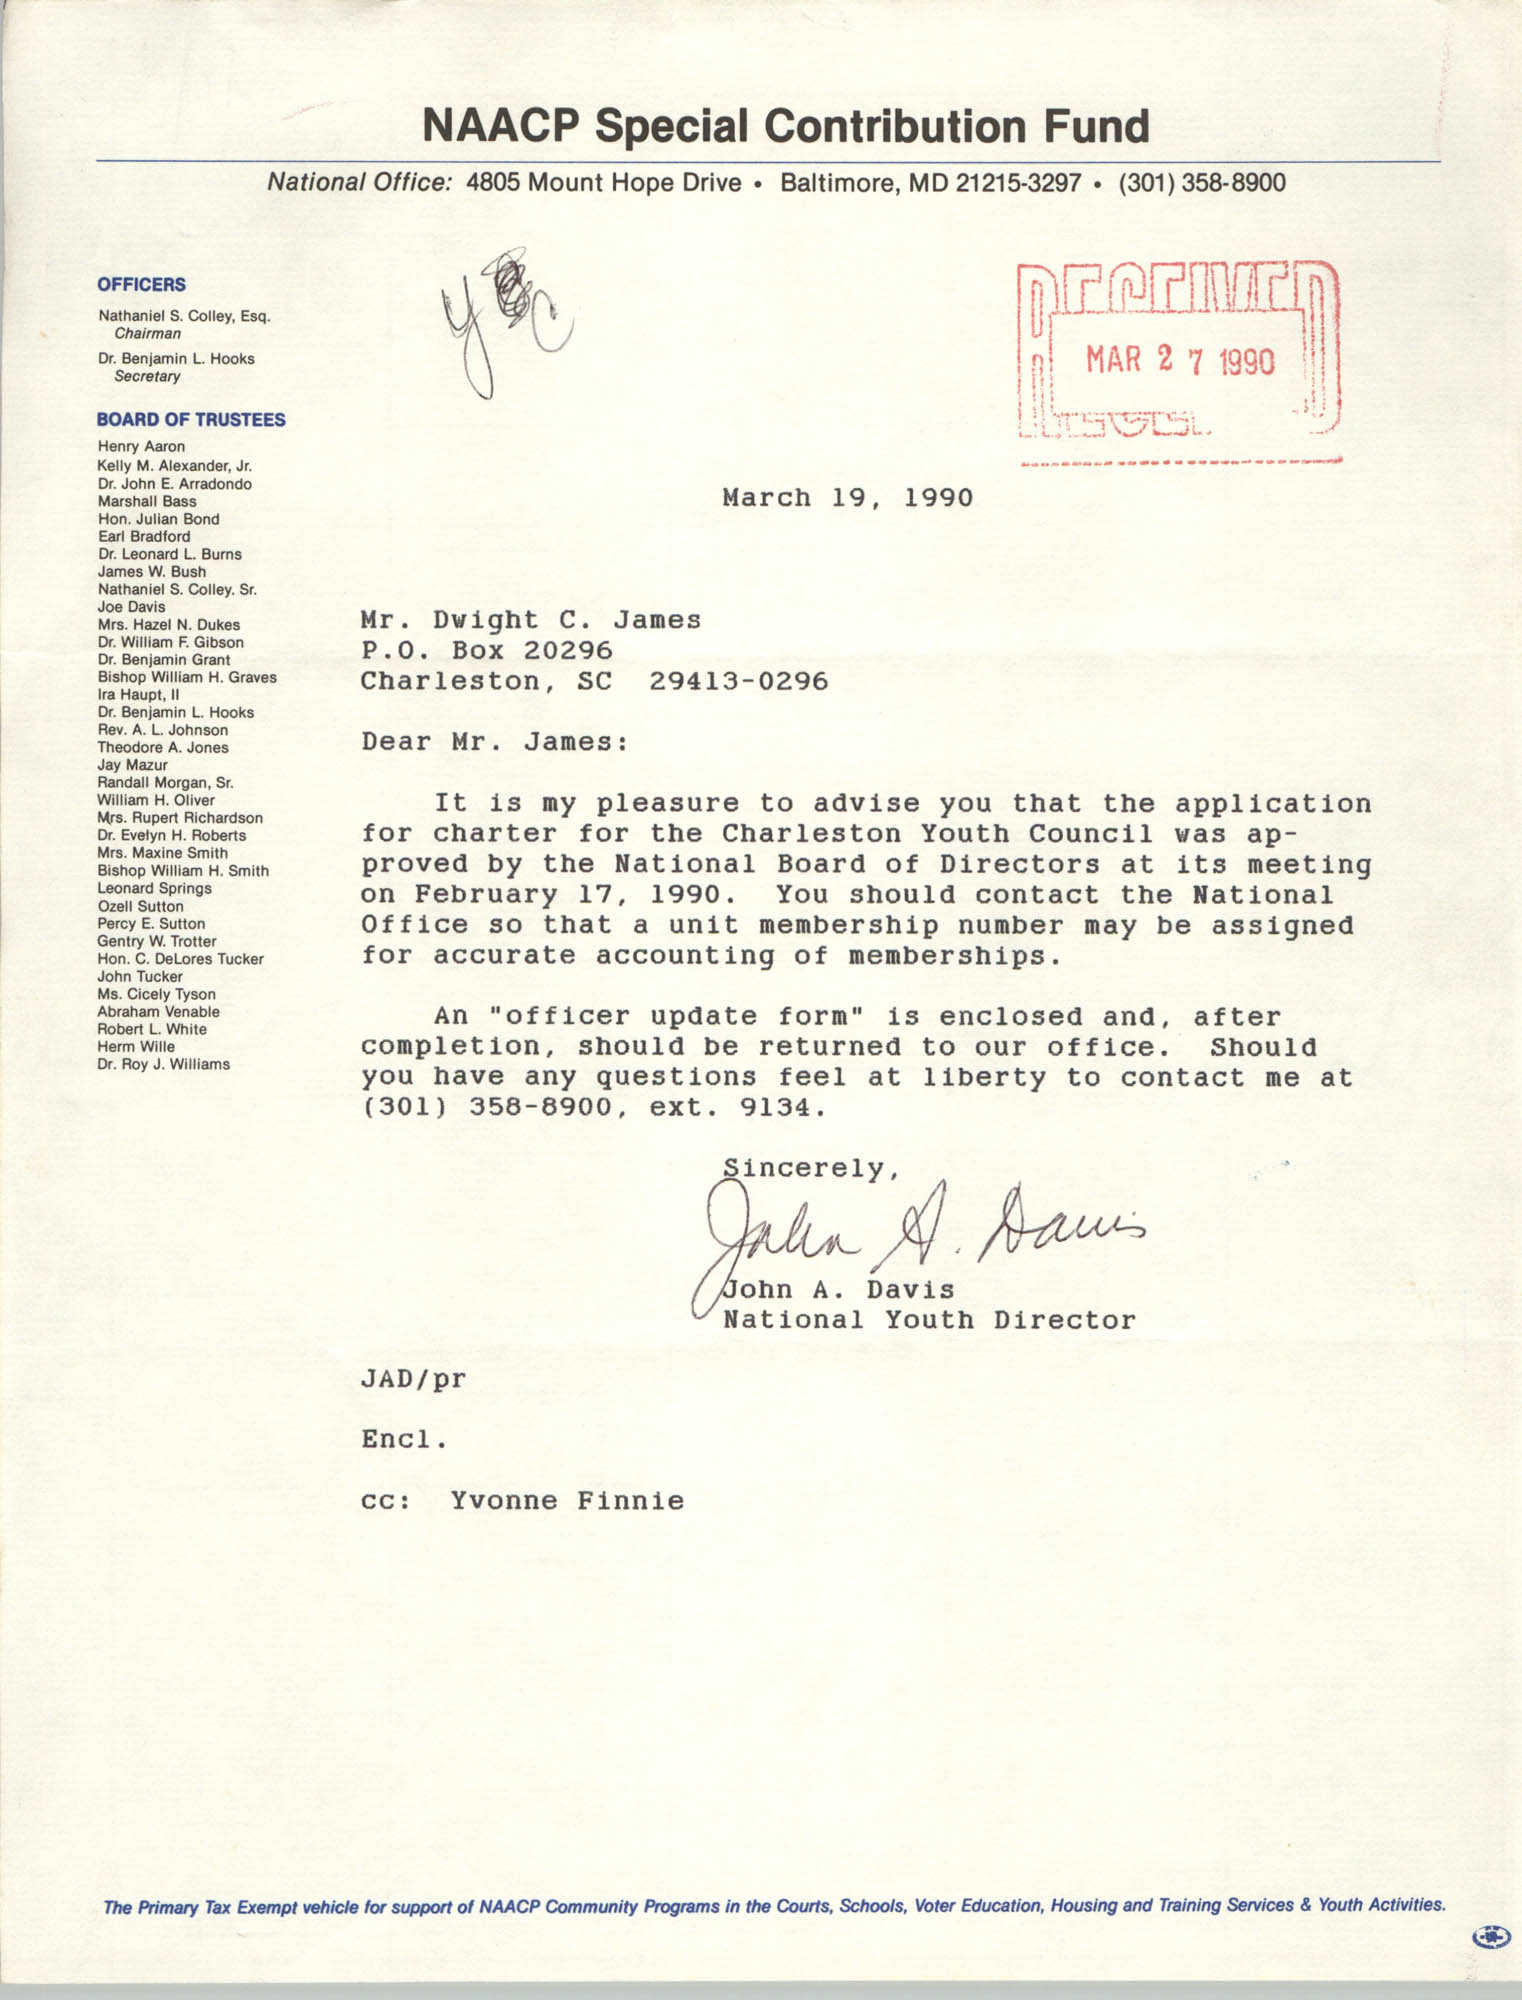 Letter from John A. Davis to Dwight C. James, March 19, 1990